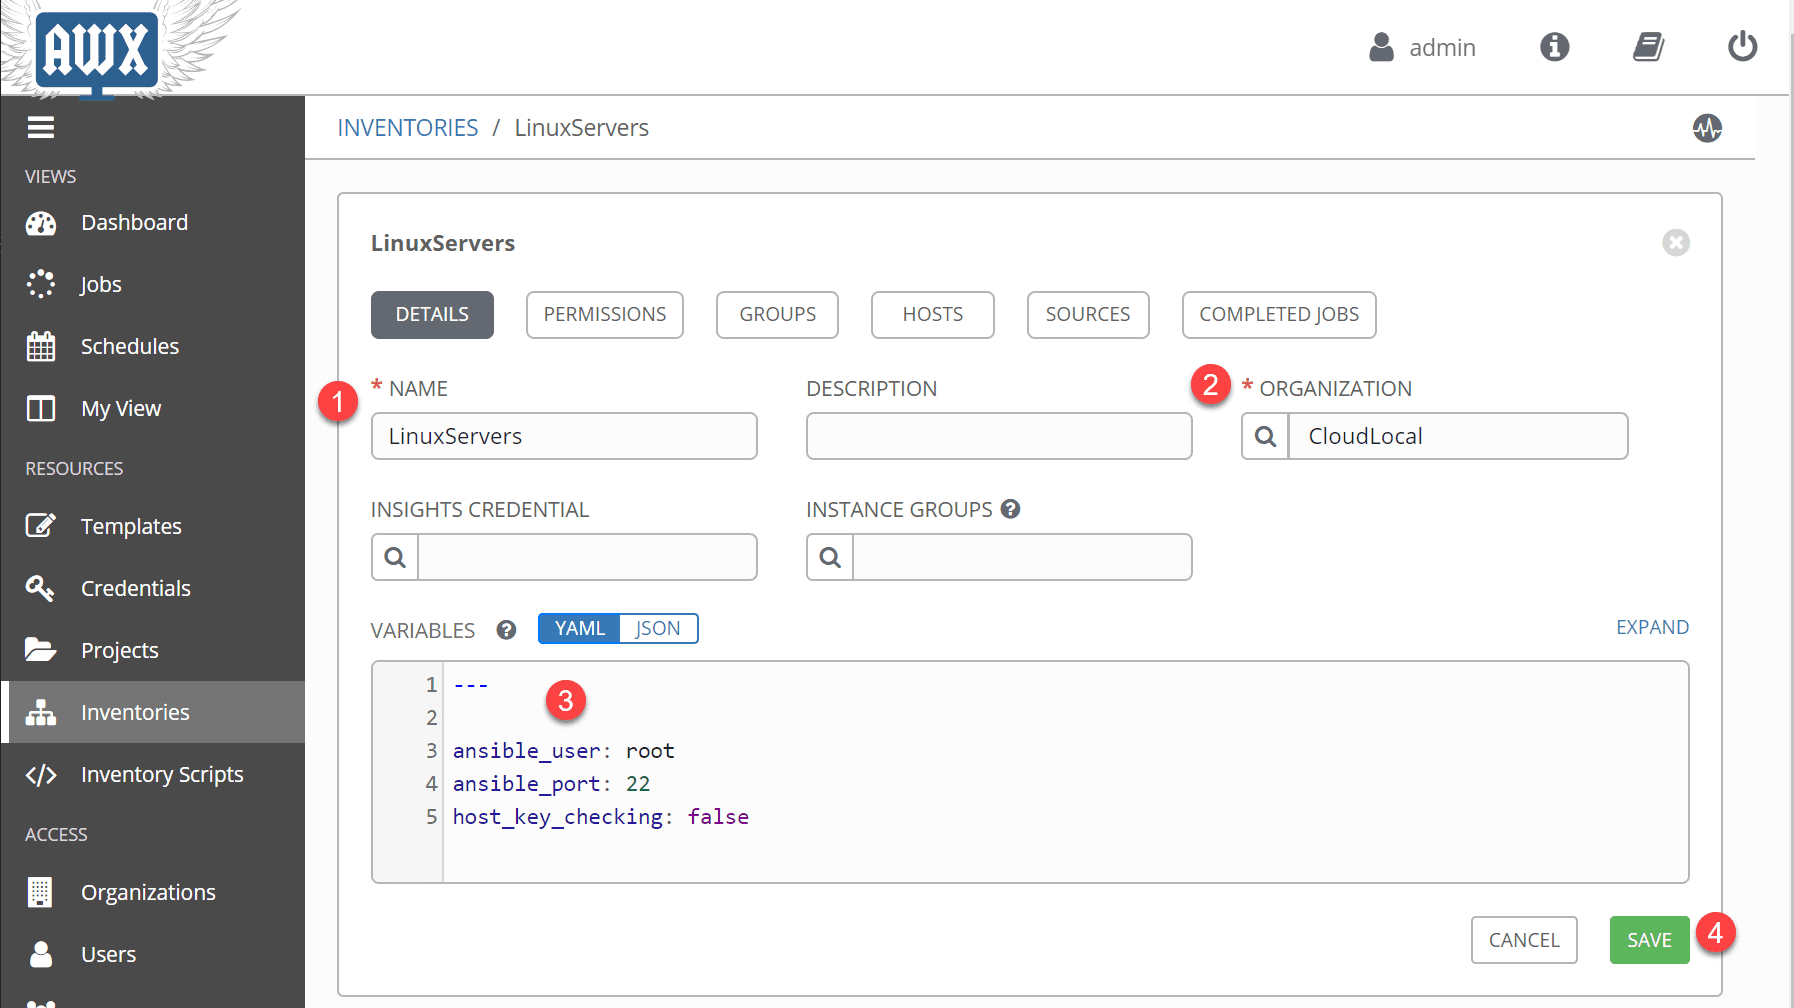 Creating-inventories-in-Ansible-AWX-for-server-connections-and-hosts